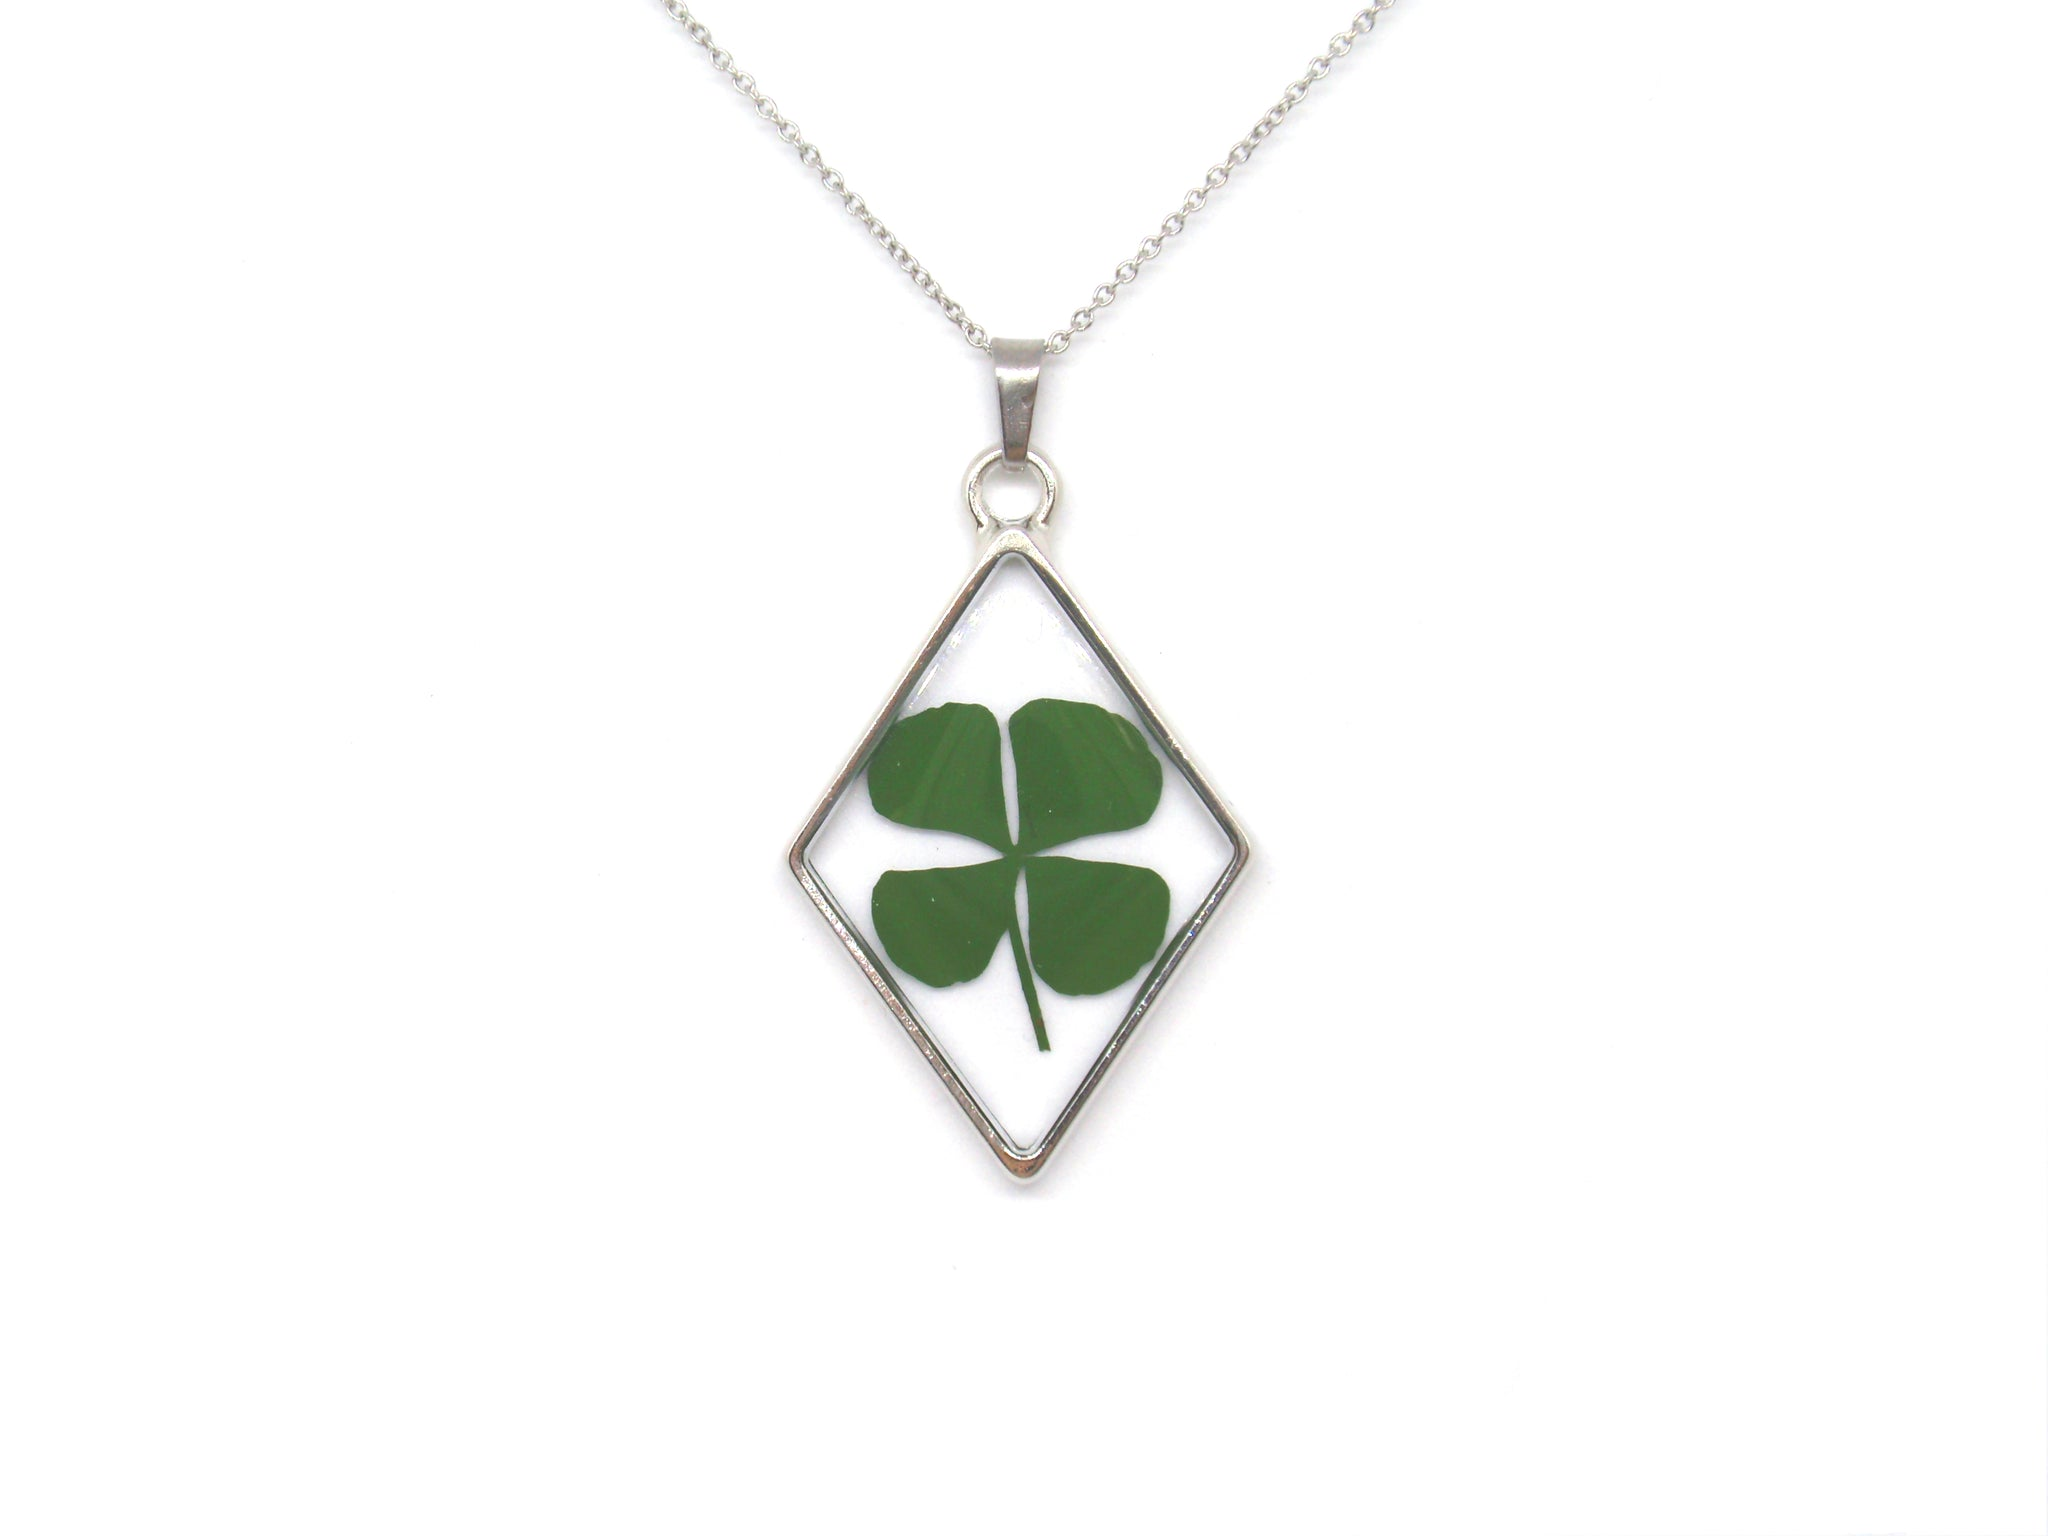 Four leaf clover resin necklace